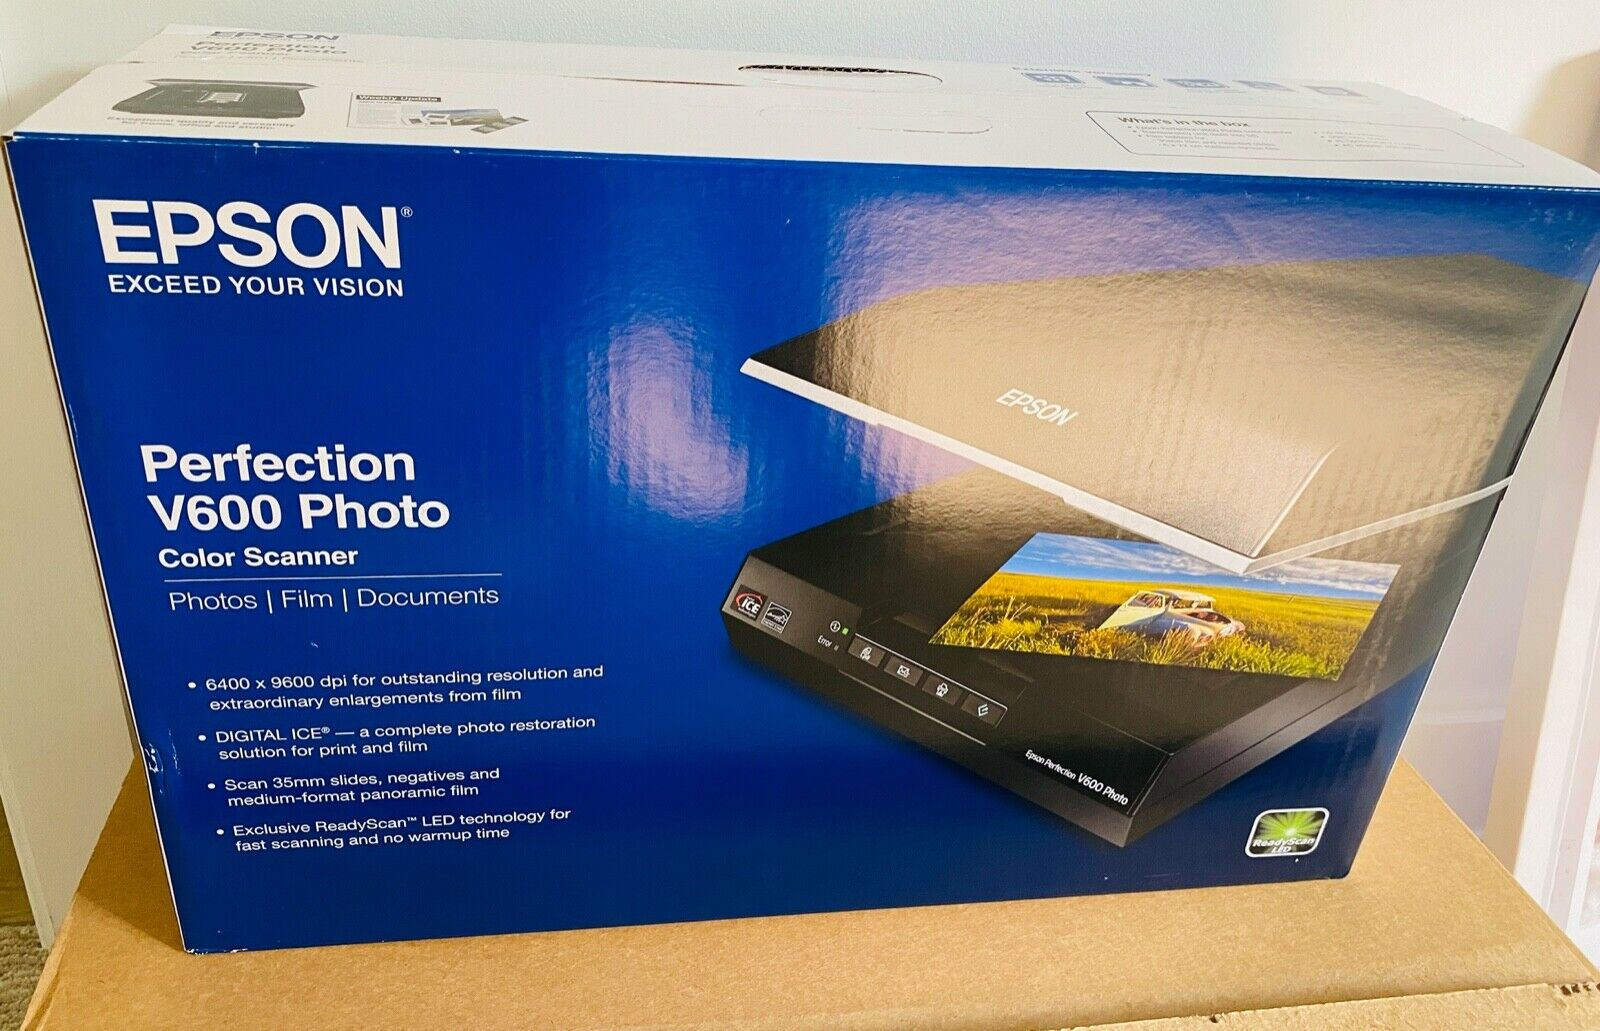 Epson Perfection V600 Photo and Document 6400 dpi USB Color